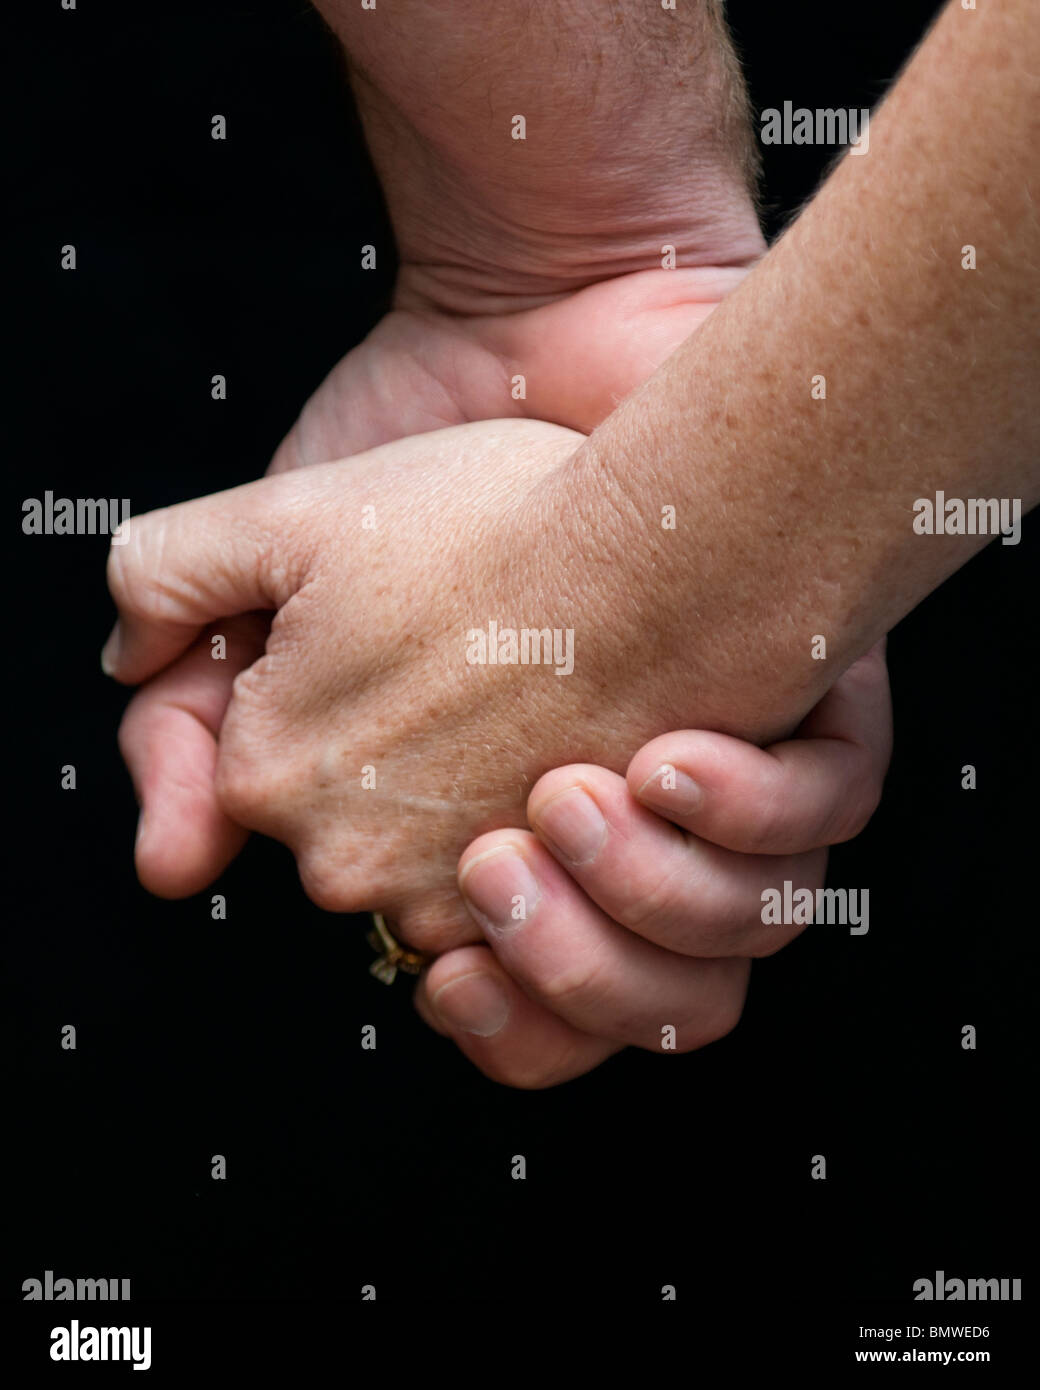 Fingers Interlocked High Resolution Stock Photography and